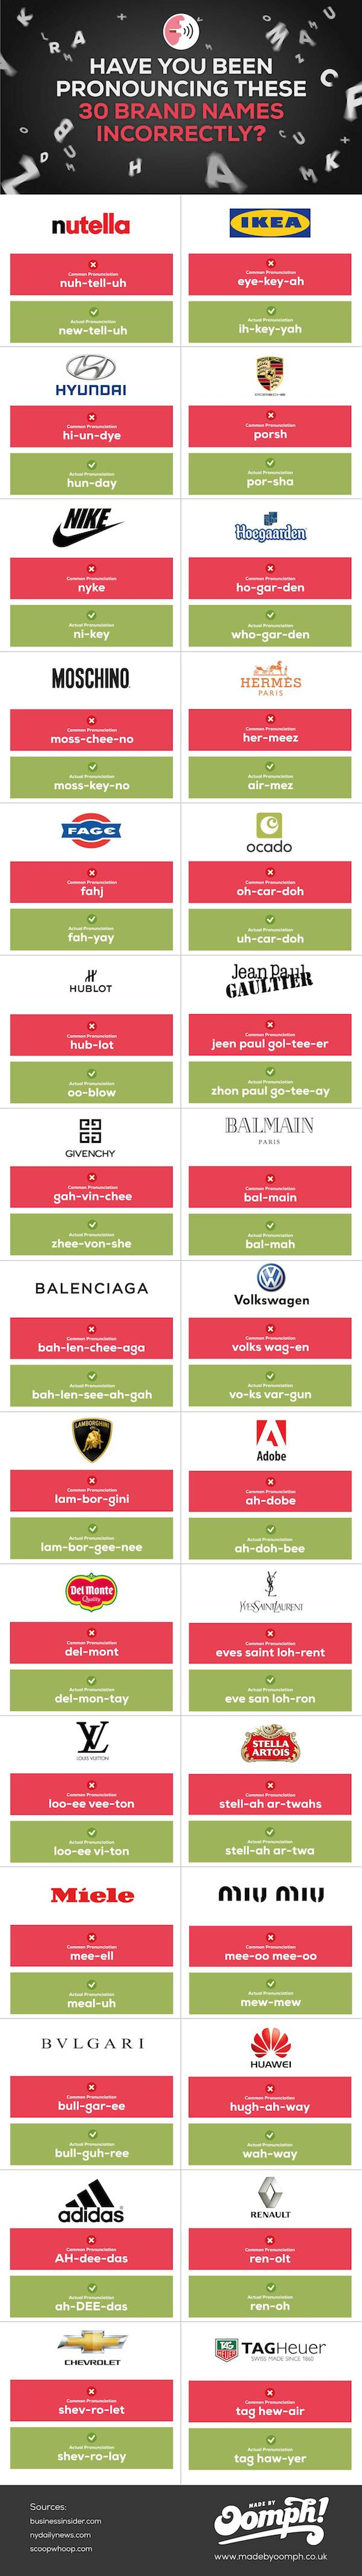 hard-to-pronounce-brand-names-infographic.jpg